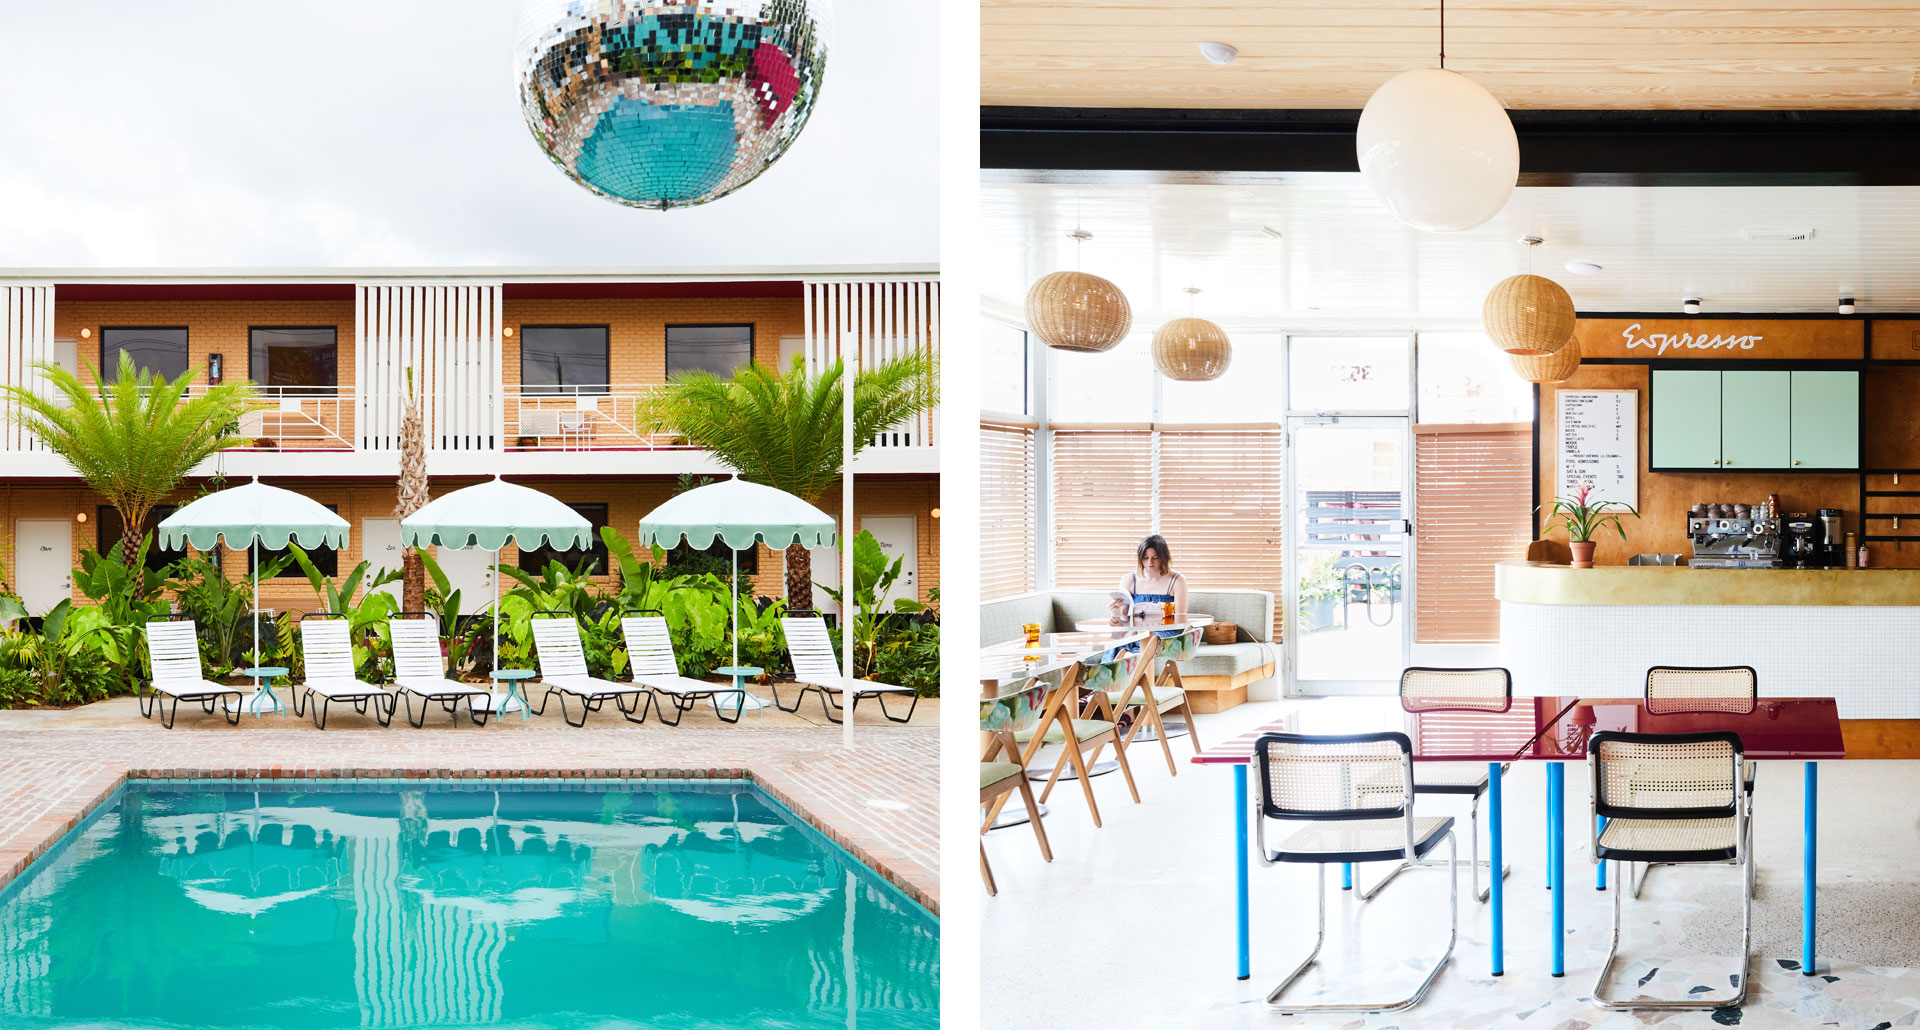 The Drifter Hotel - boutique hotel in New Orleans